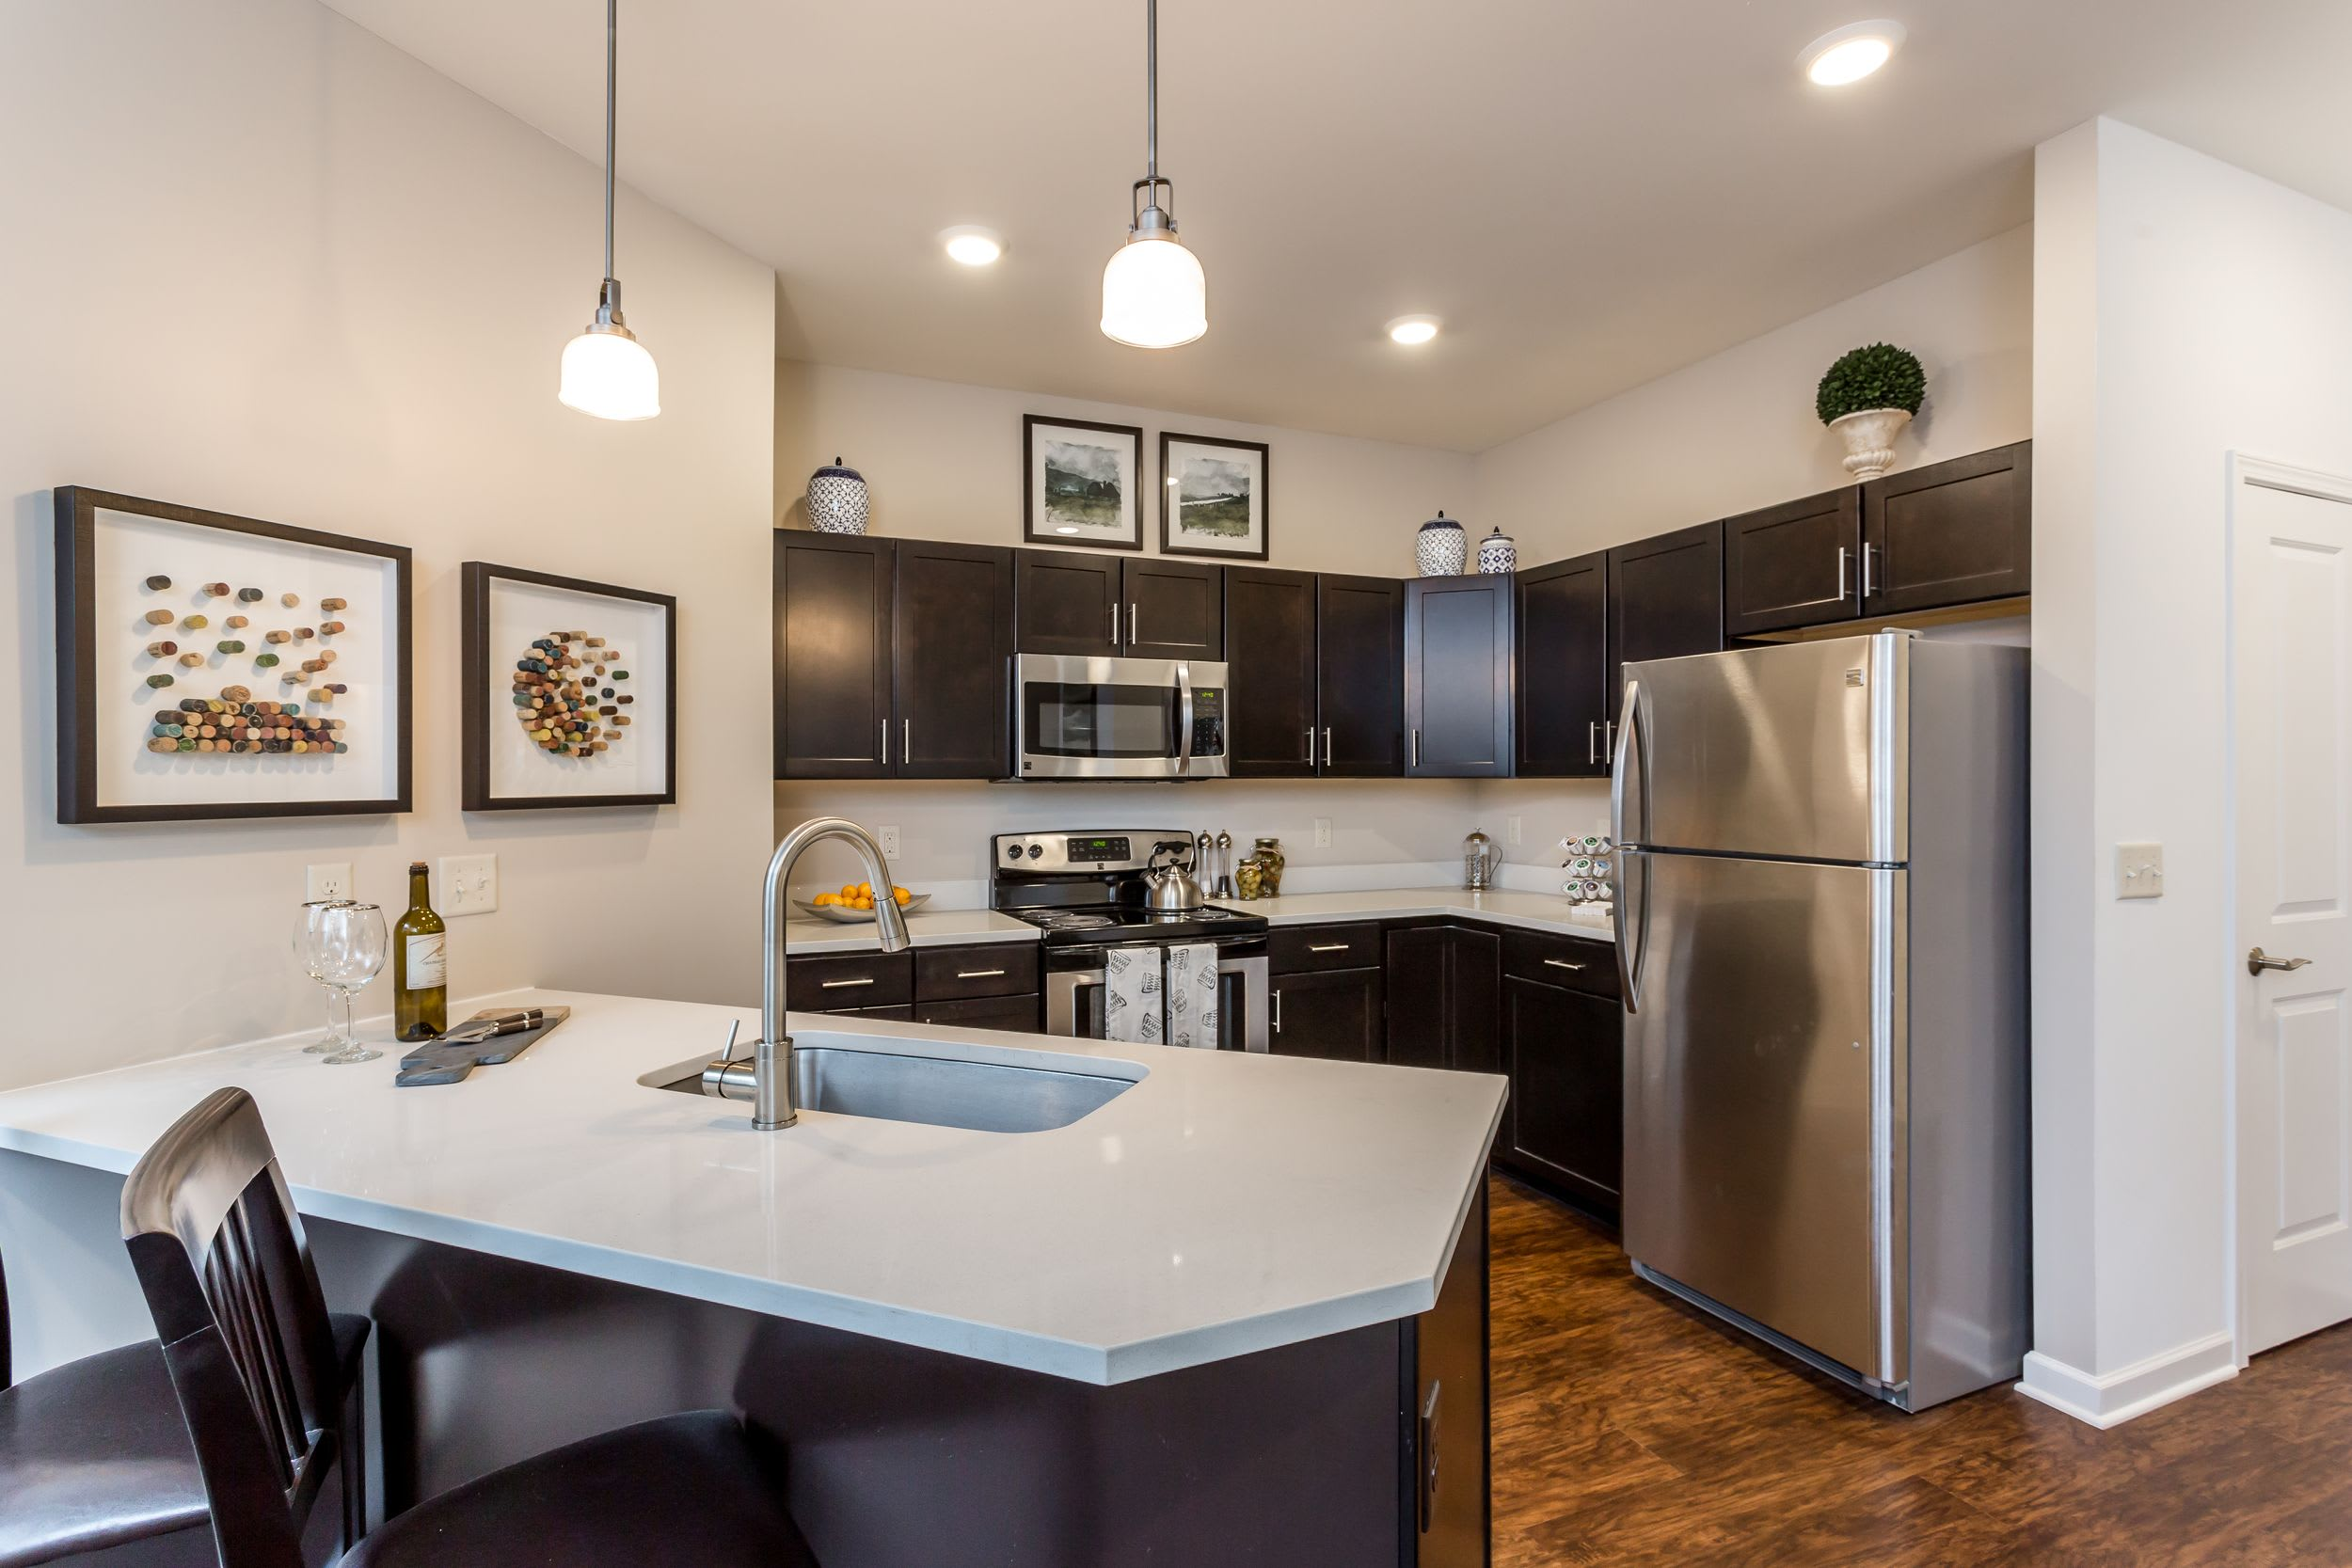 Bright kitchen at The Links at CenterPointe Townhomes in Canandaigua, NY